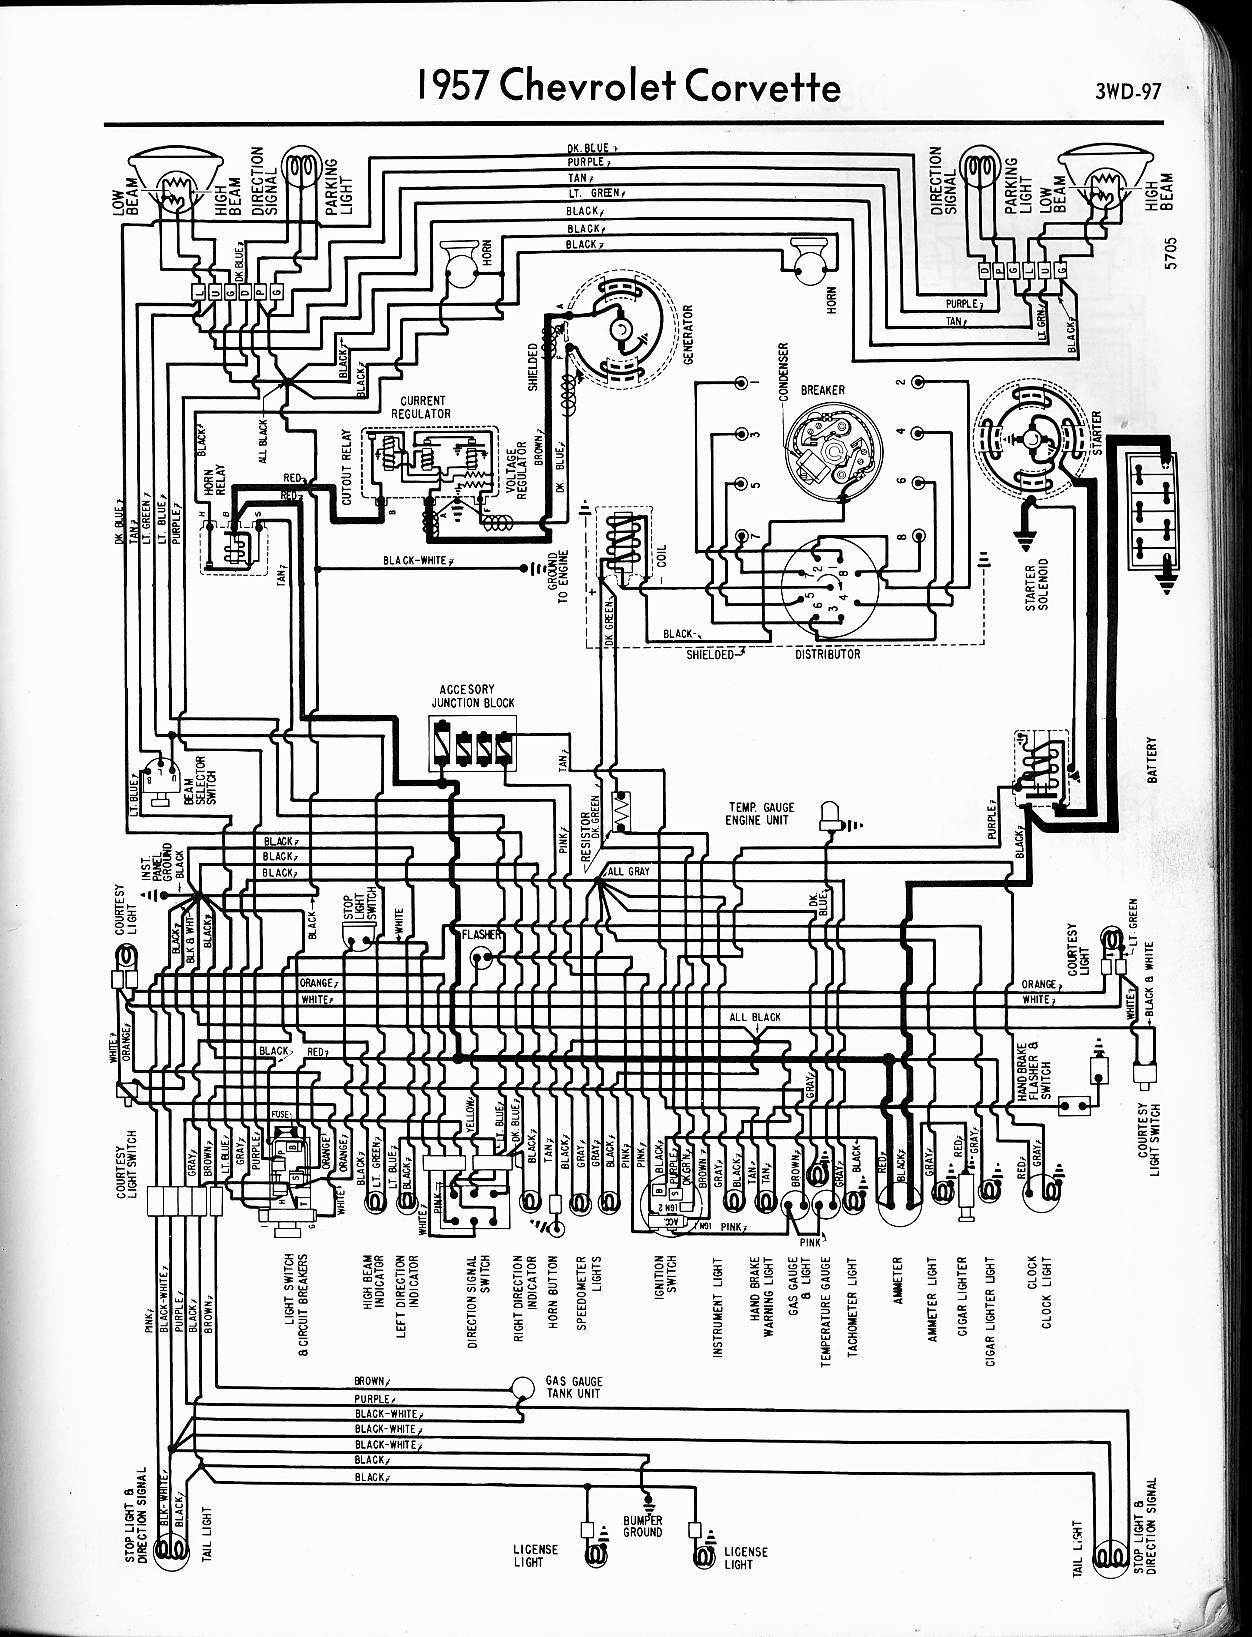 Motor Starter Wiring Diagram For 1967 Chevy Guide And Amc 304 Engine 1965 C10 Library Rh 11 Mml Partners De Caterpillar On 2005 Gmc Truck